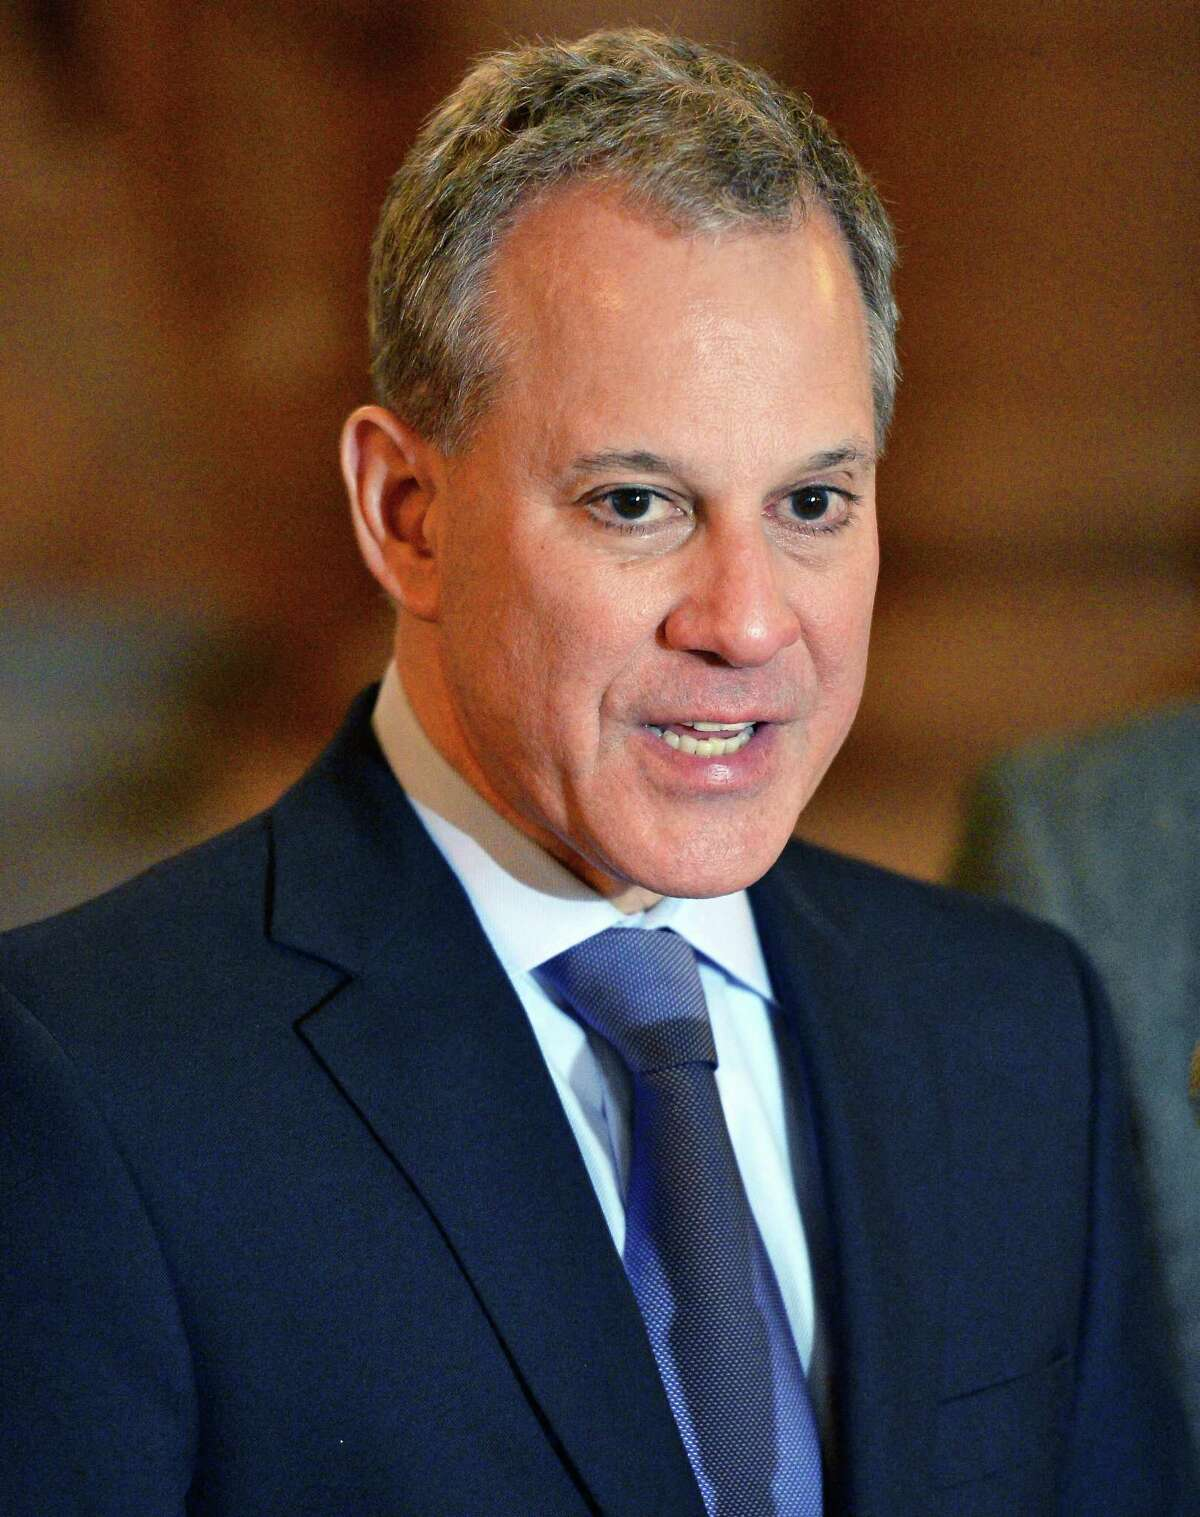 FILE - Attorney General Eric Schneiderman releases a report on voting rights across the state, detailing the results of his inquiry into the unprecedented level of voting complaints regarding the April 2016 presidential primary during a news conference at the Capitol Tuesday Dec. 6, 2016 in Albany, NY. (John Carl D'Annibale / Times Union)